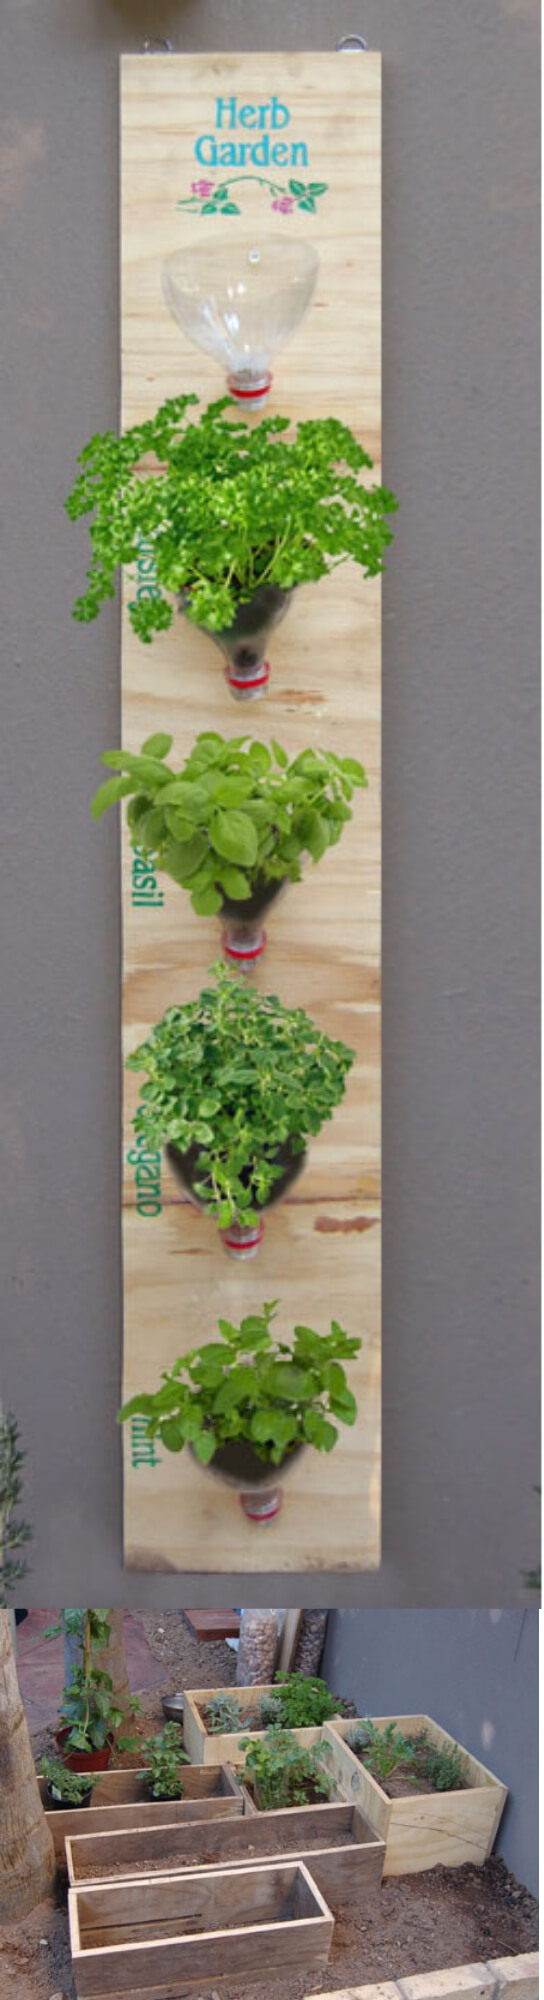 Make a hanging herb garden